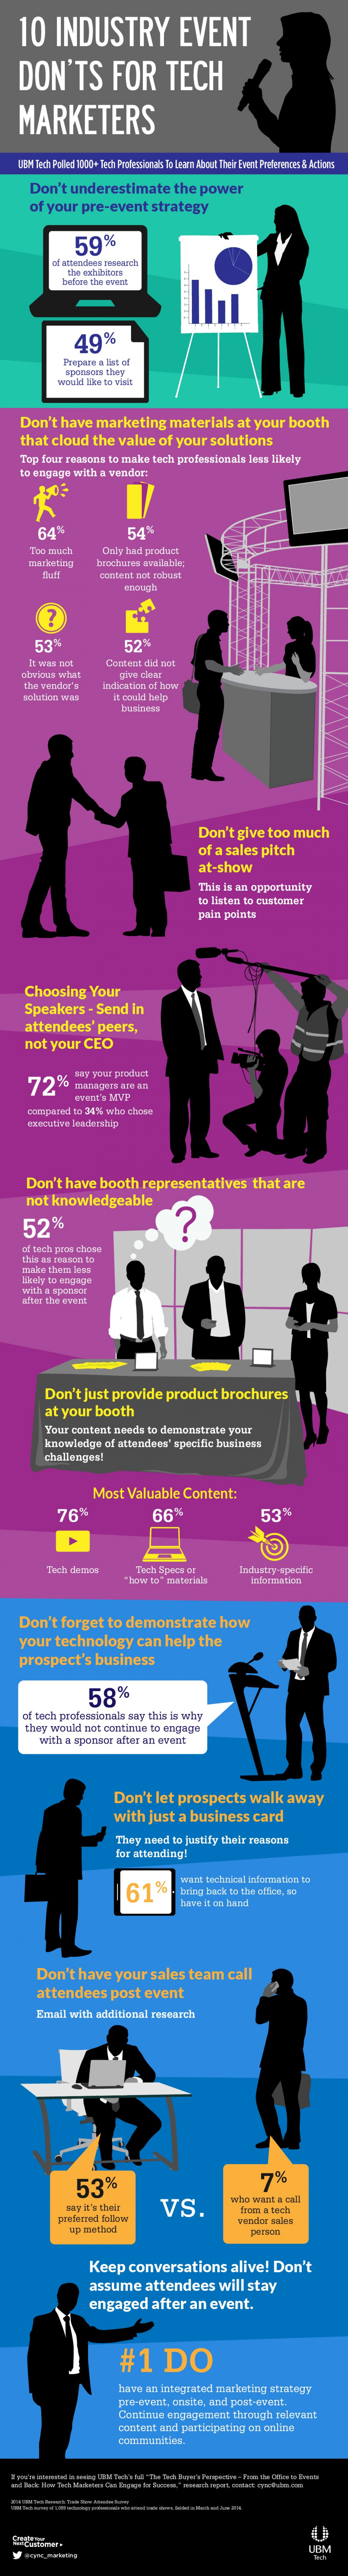 10 Industry Event Don'ts For Tech Marketers Infographic